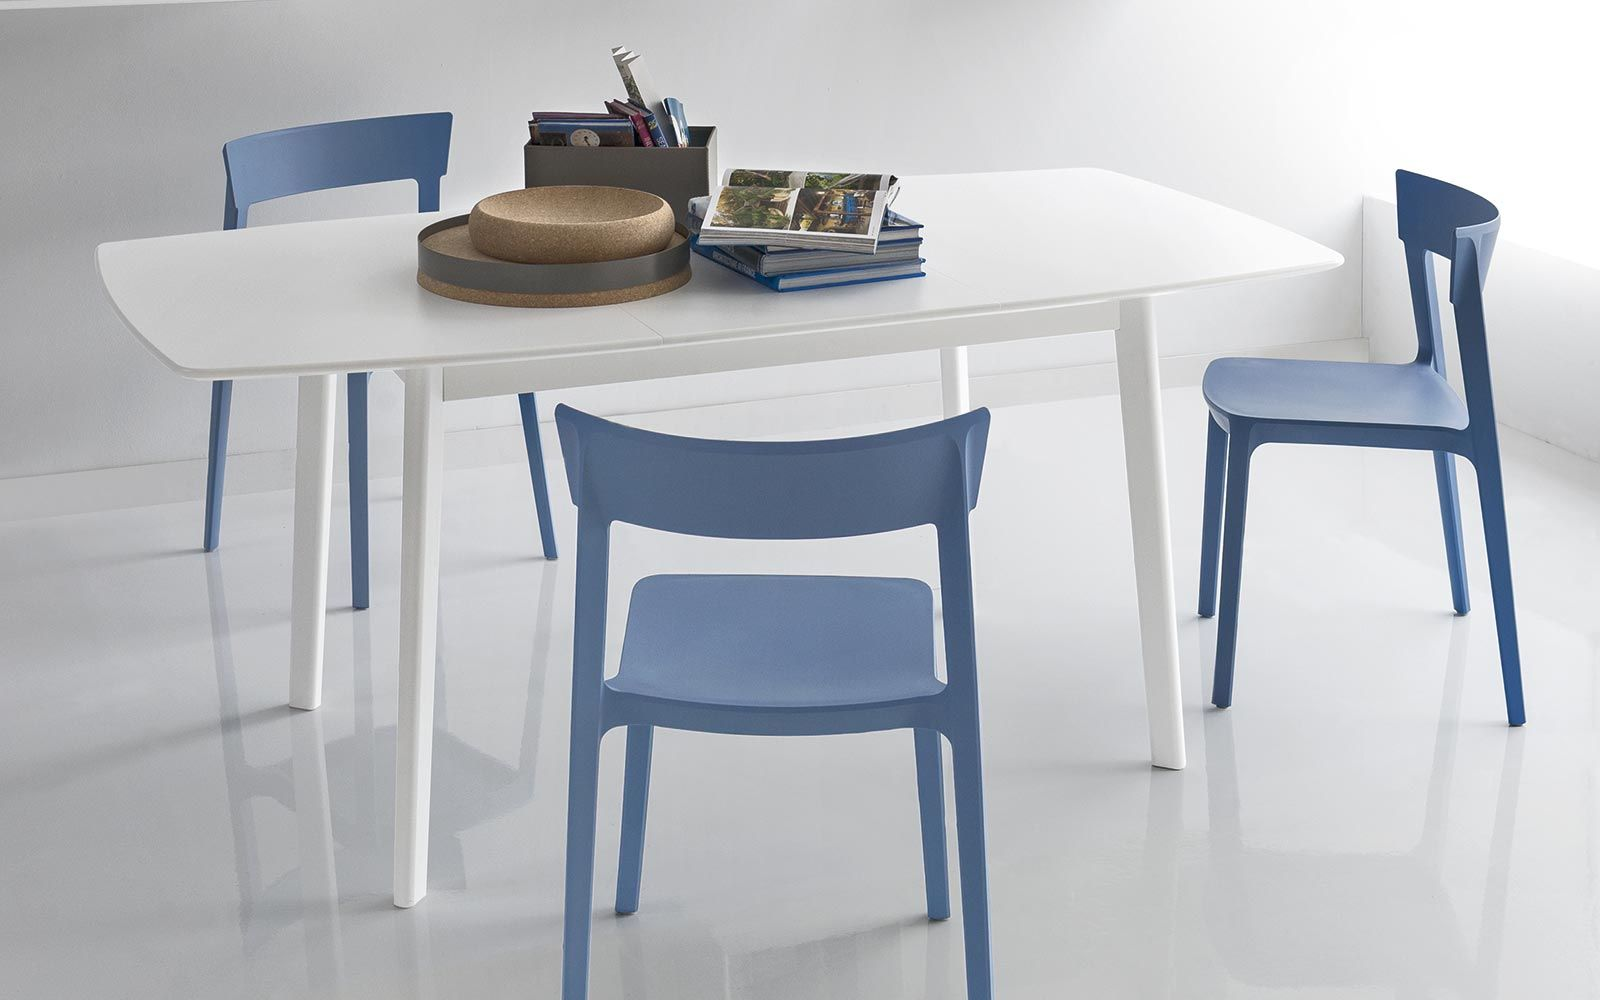 Pin by H & A Home on Calligaris Best Selling Chairs | Pinterest ...